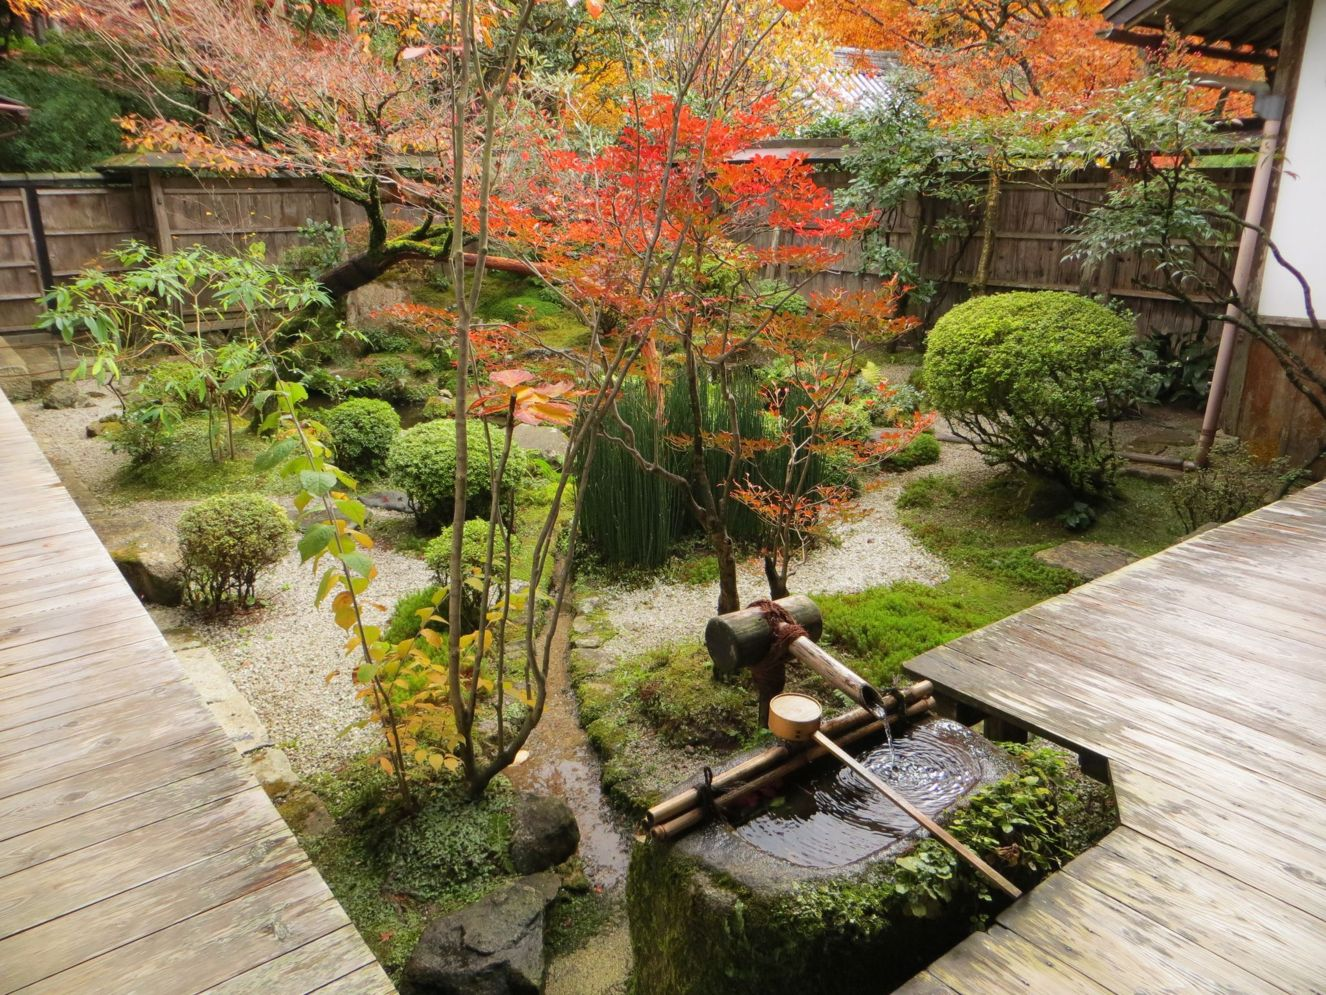 Green outdoor ideas with calming vibes from Zen garden style showing harmonious and balanced various natural elements Image 36